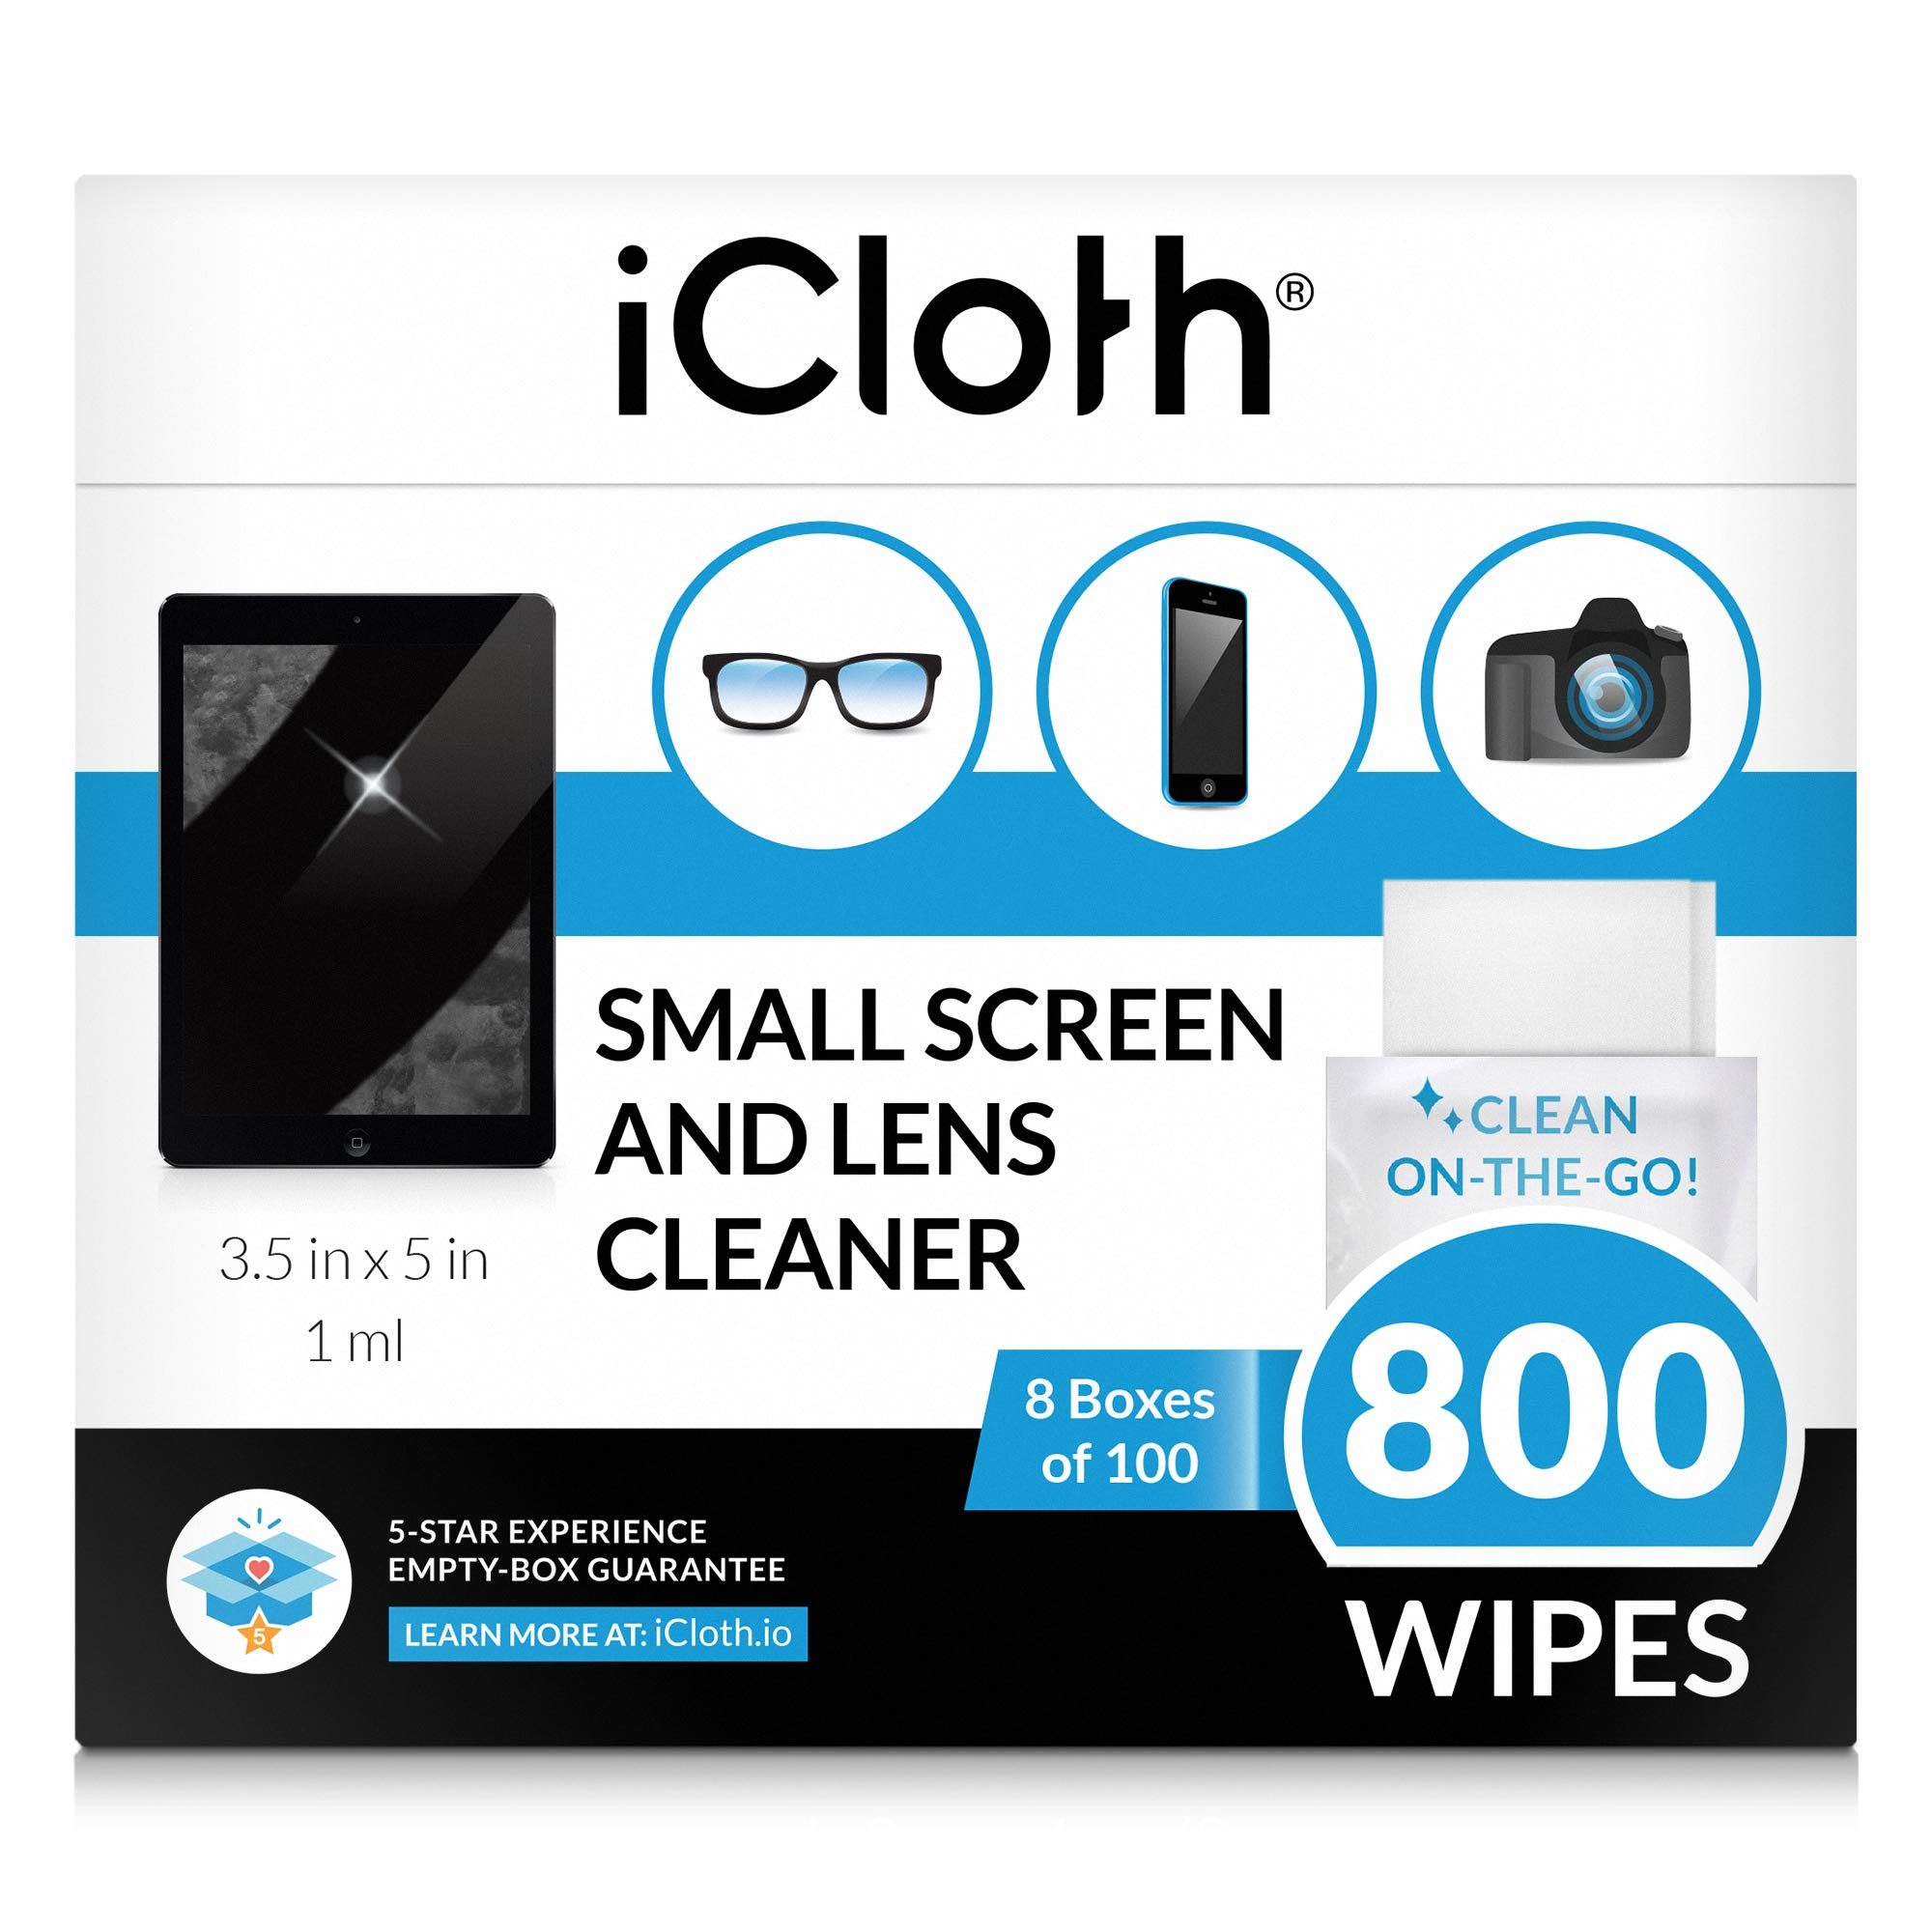 iCloth Lens and Screen Cleaner Pro-Grade Individually Wrapped Wet Wipes, Wipes for Cleaning Small Electronic Devices Like Smartphones and Tablets, Box of 800